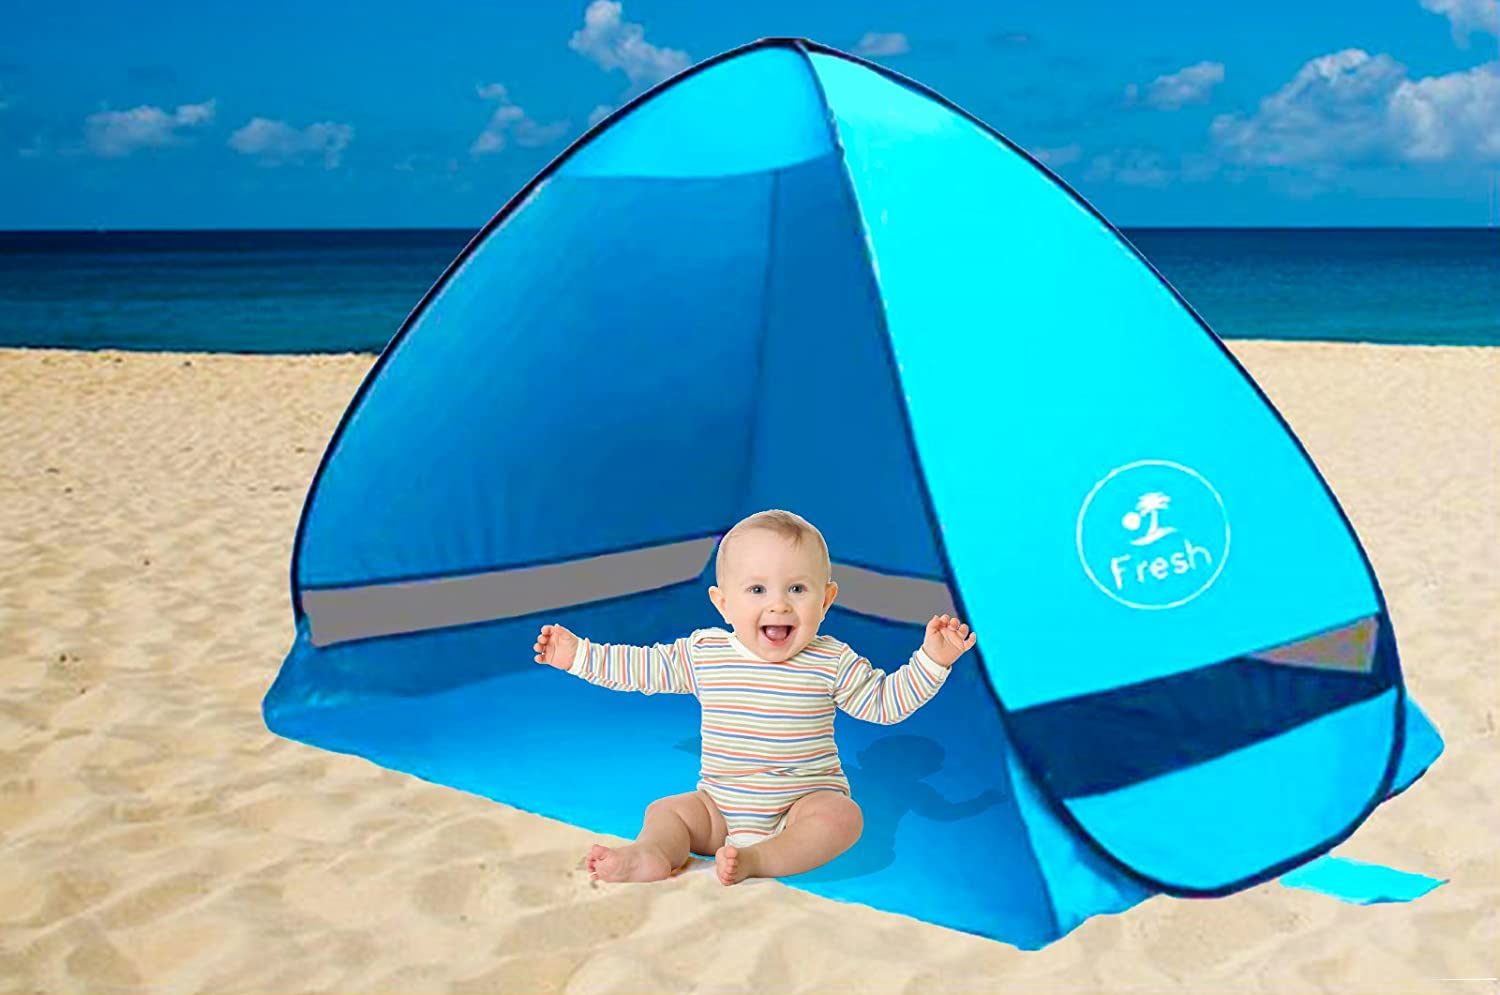 Pop Up Baby Beach Tent, Portable, UV Protection, Waterproof Tent for The Beach, The Park, Hiking, Picnics, Fishing or Camping (Blue) Do Right